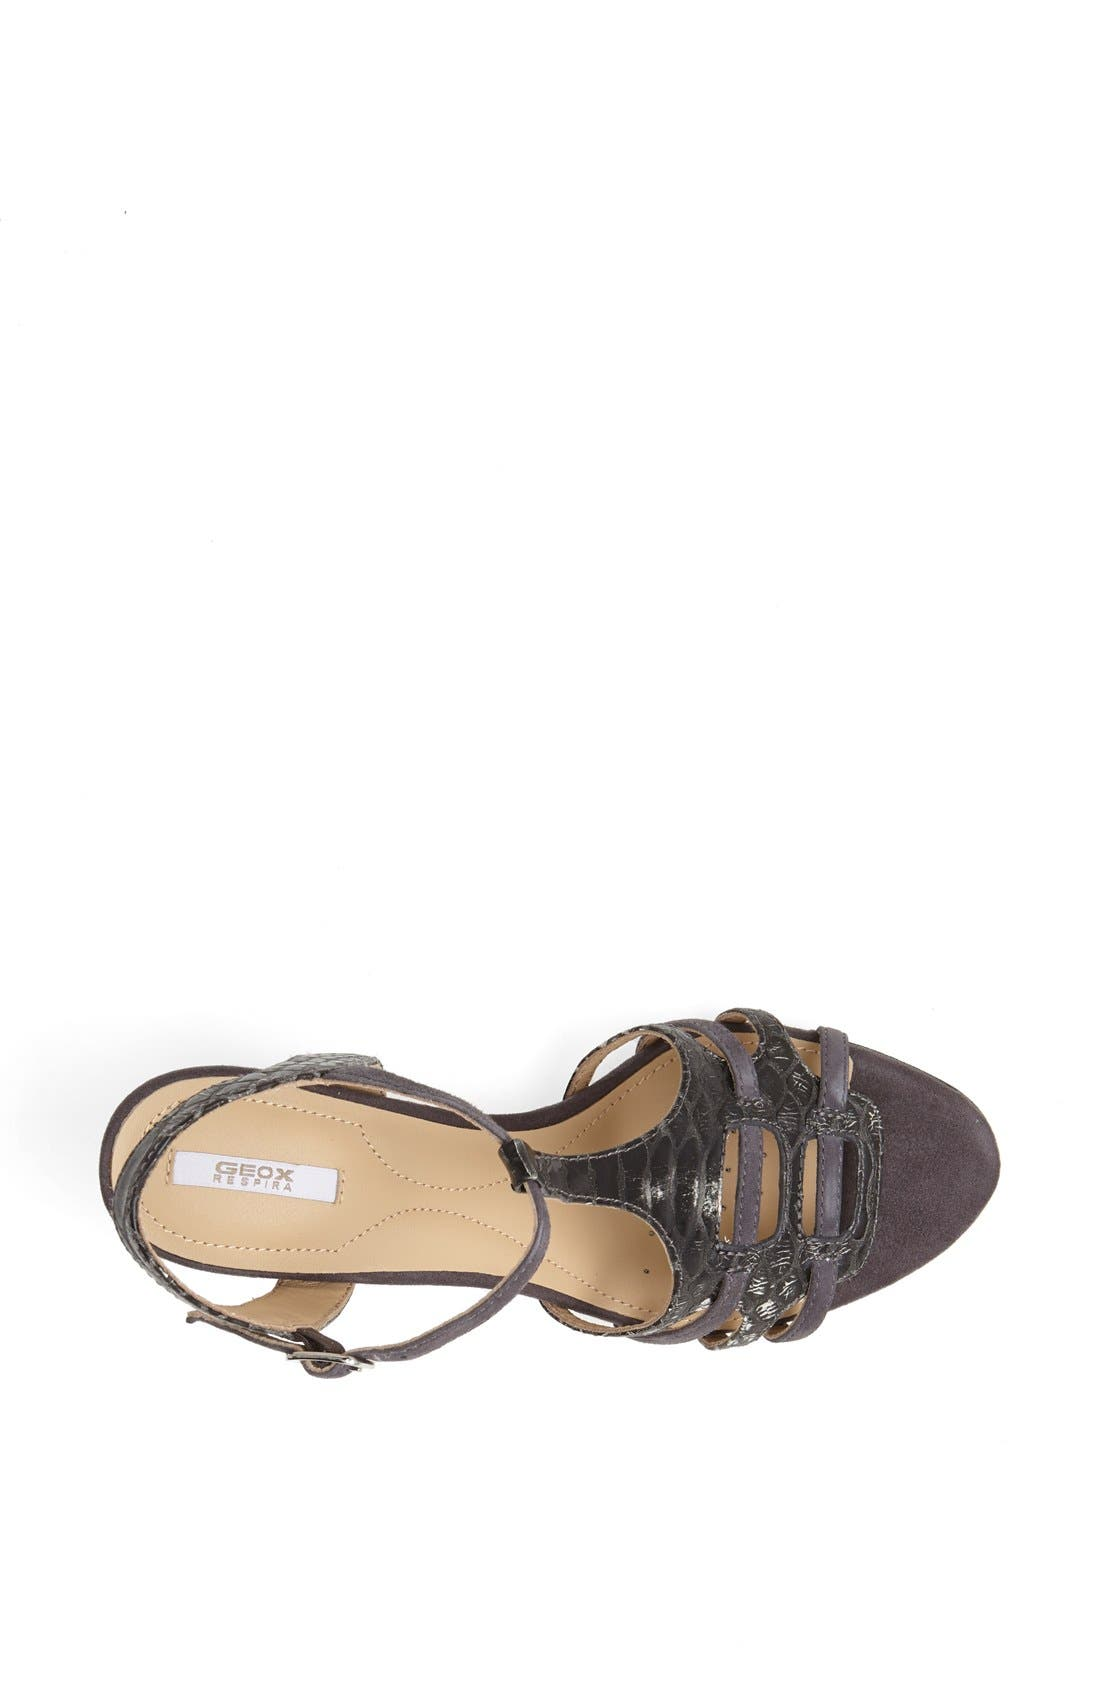 Alternate Image 3  - Geox 'Nesa' Sandal